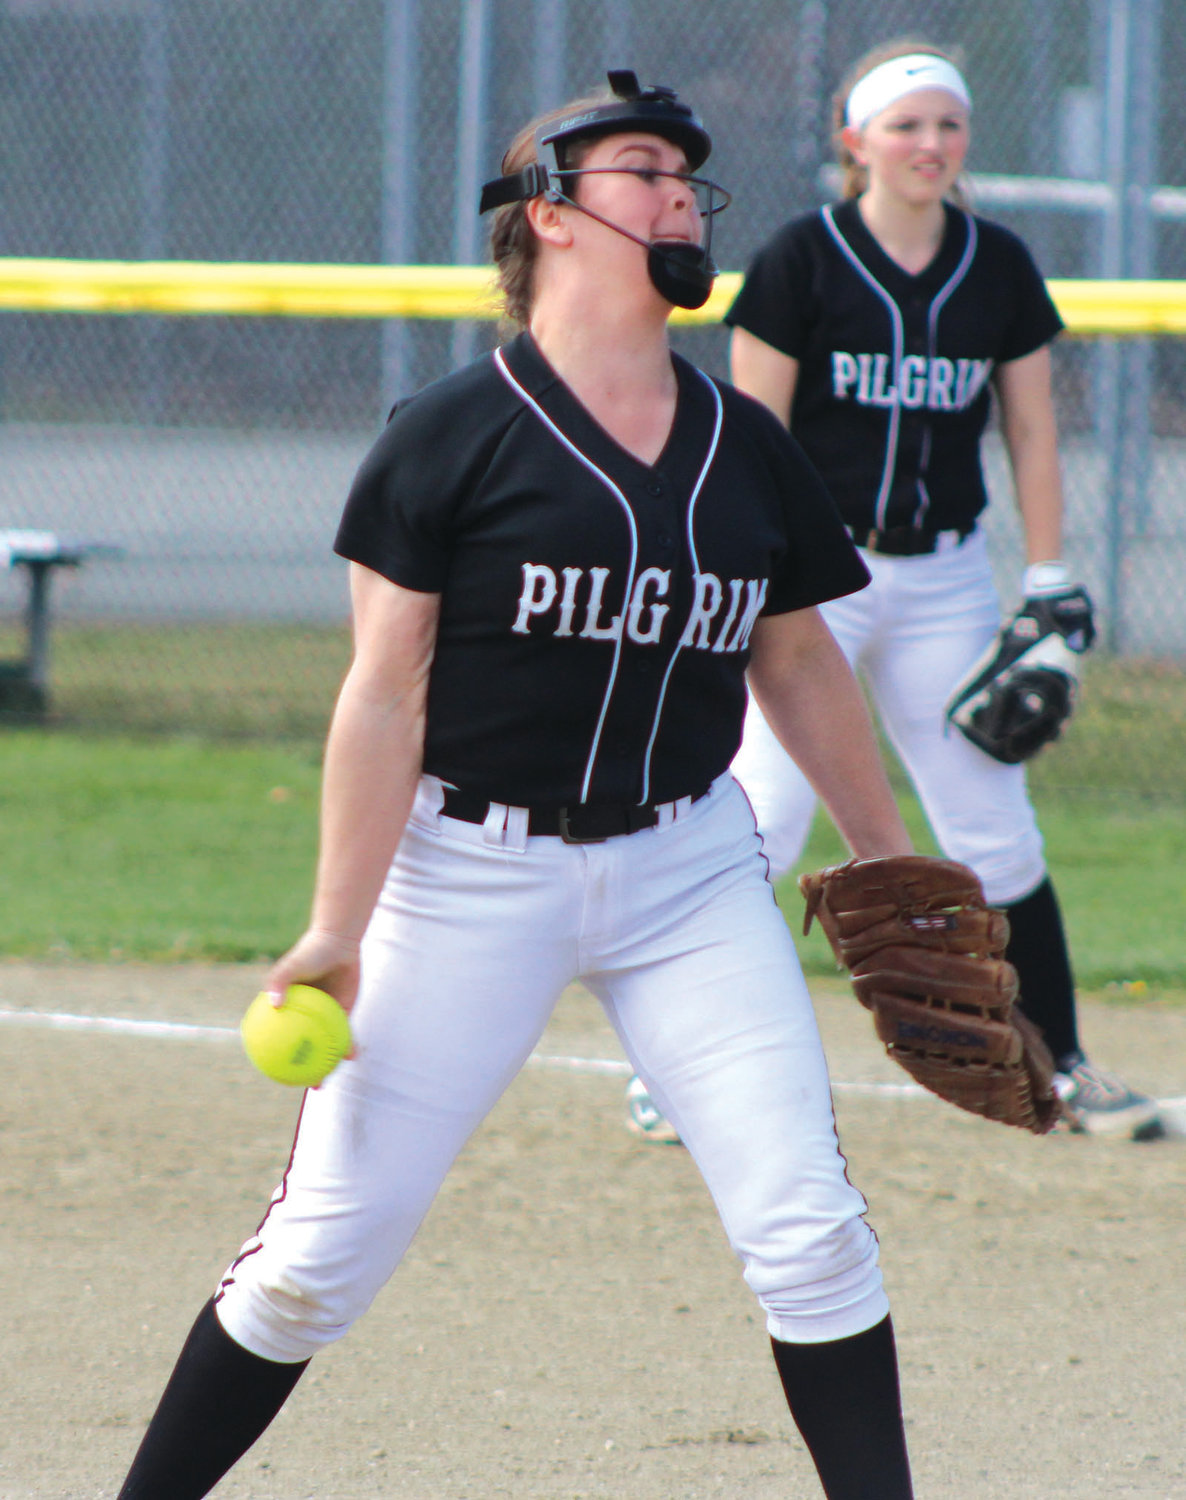 IN THE CIRCLE: Pilgrim pitcher Emily Carter delivers against Mount St. Charles.